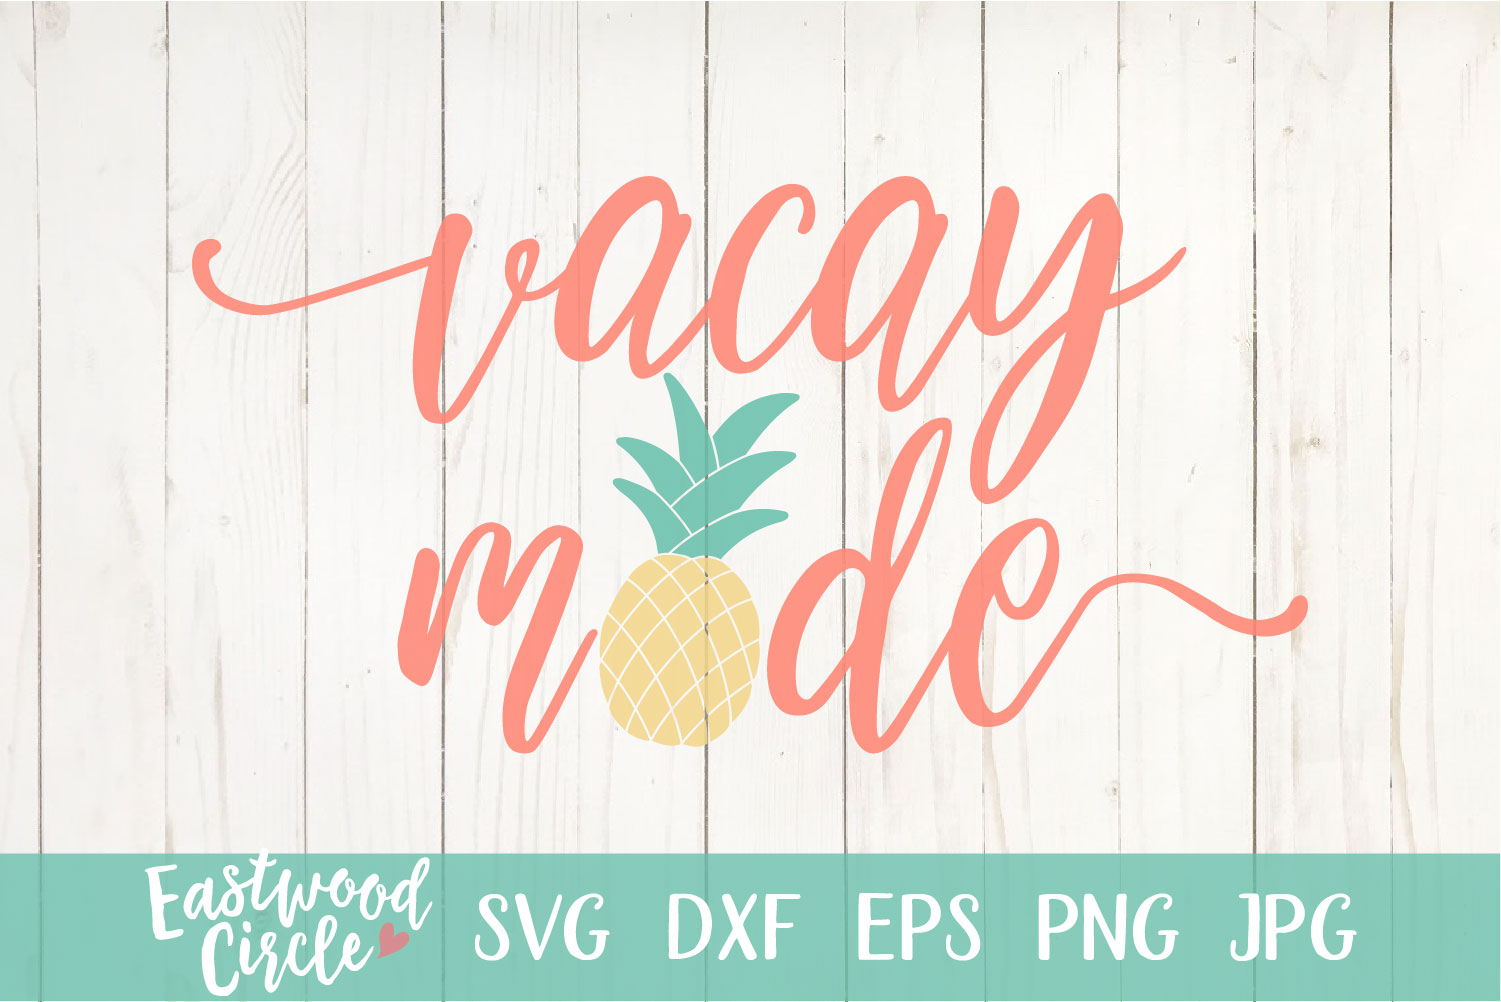 Vacay Mode - A Summer SVG File for Crafters example image 2